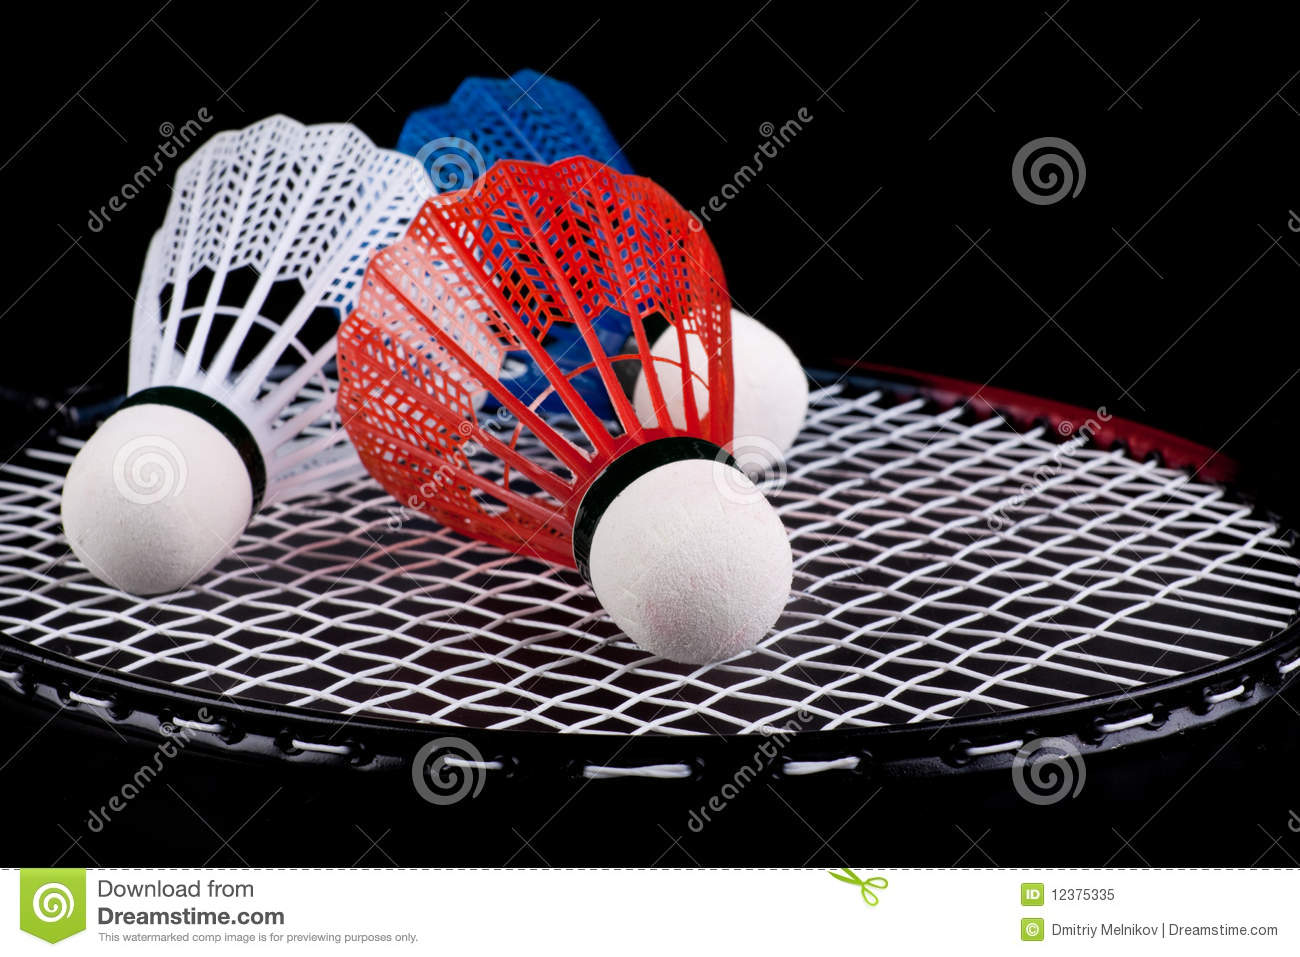 More similar stock images of   Shuttlecock and badminton racket  Badminton Racket And Shuttlecock